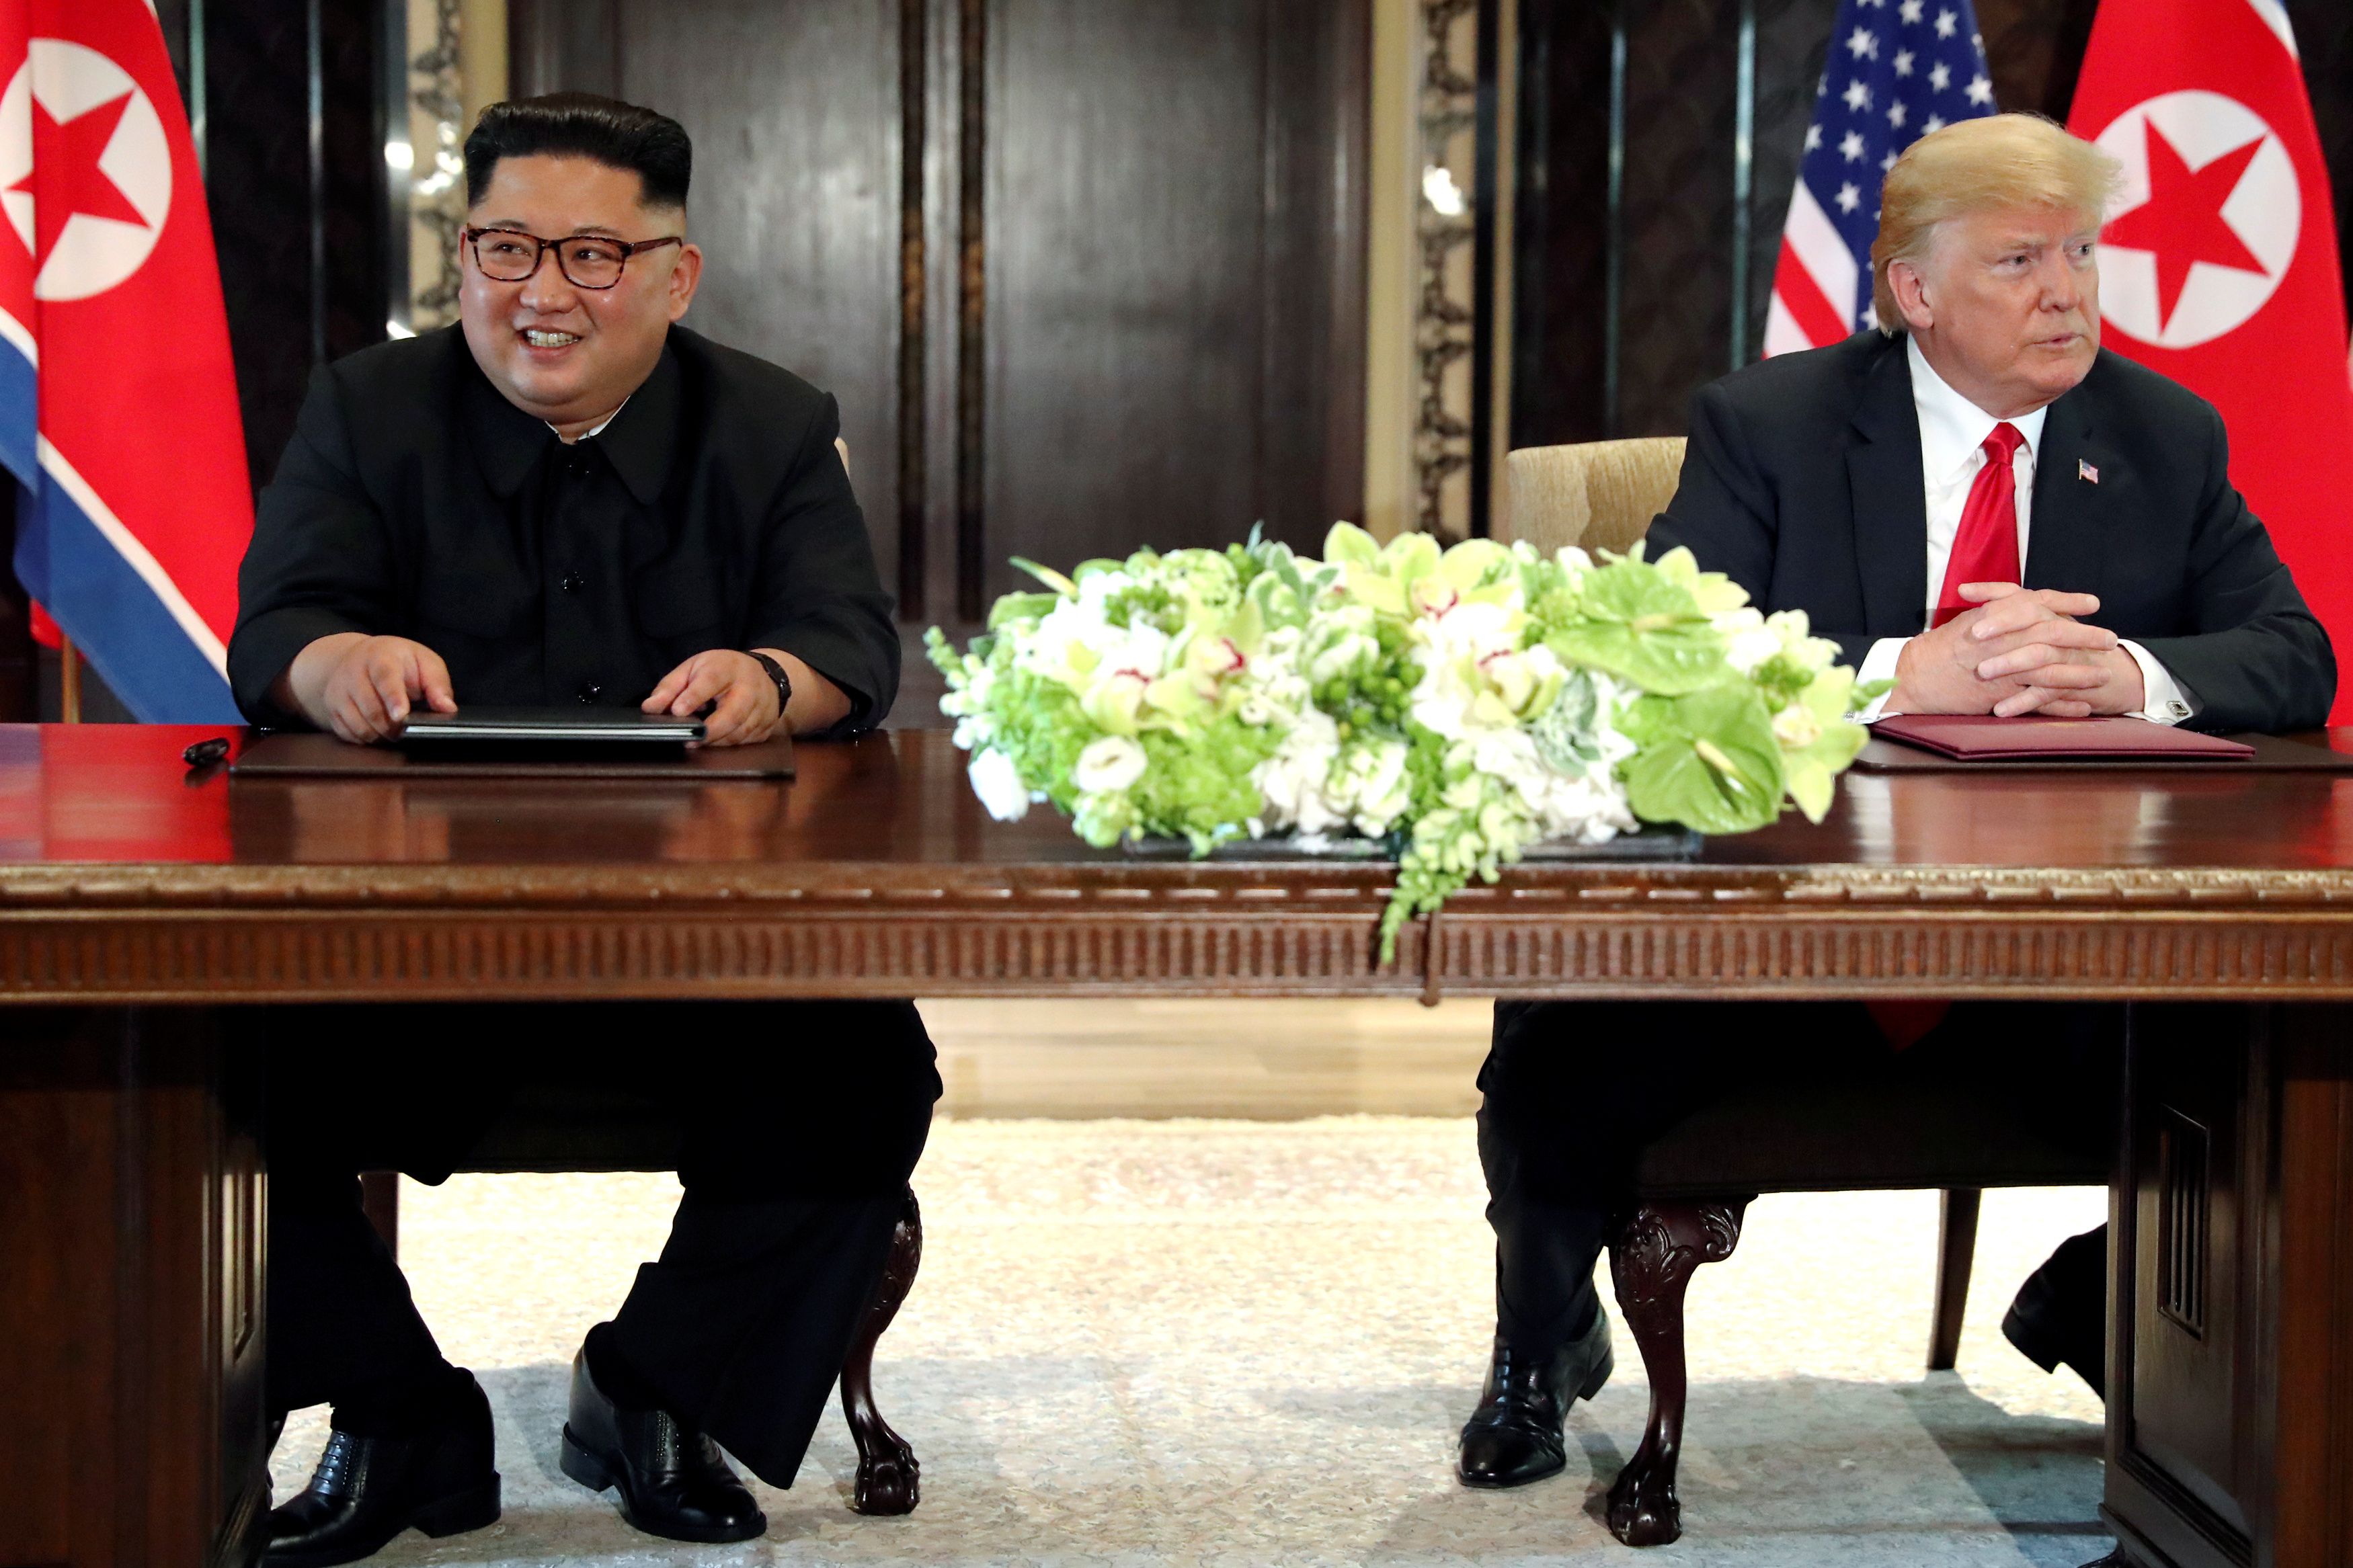 U.S. President Donald Trump and North Korea's leader Kim Jong Un hold a signing ceremony at the conclusion of their summit at the Capella Hotel on the resort island of Sentosa, Singapore June 12, 2018. Picture taken June 12, 2018. REUTERS/Jonathan Ernst - RC11AEC859A0